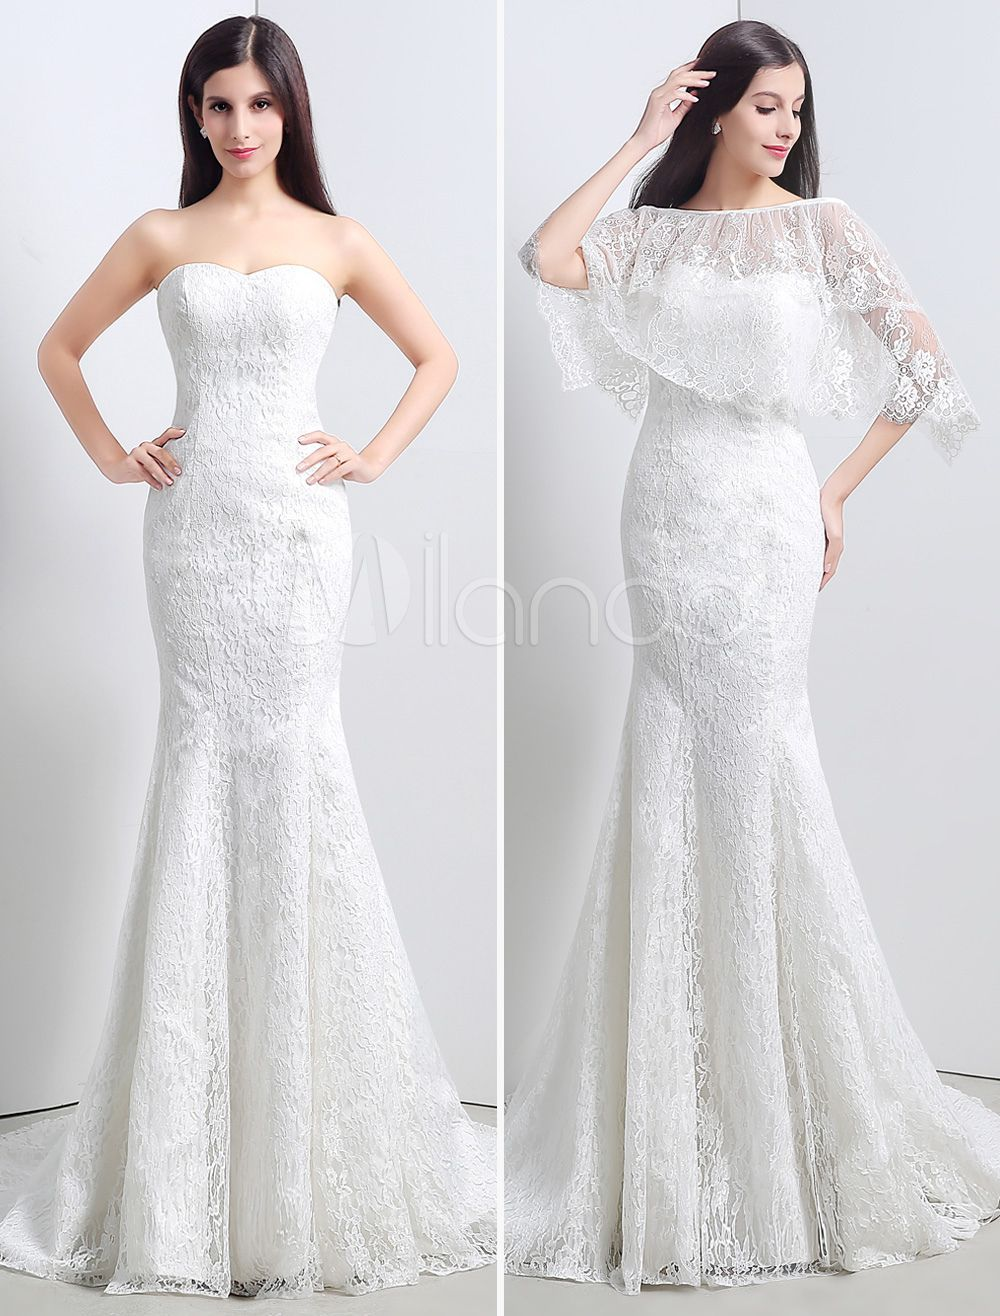 Lace Sweatheart Trumpet Mermaid Wedding Dress With Lace Cape